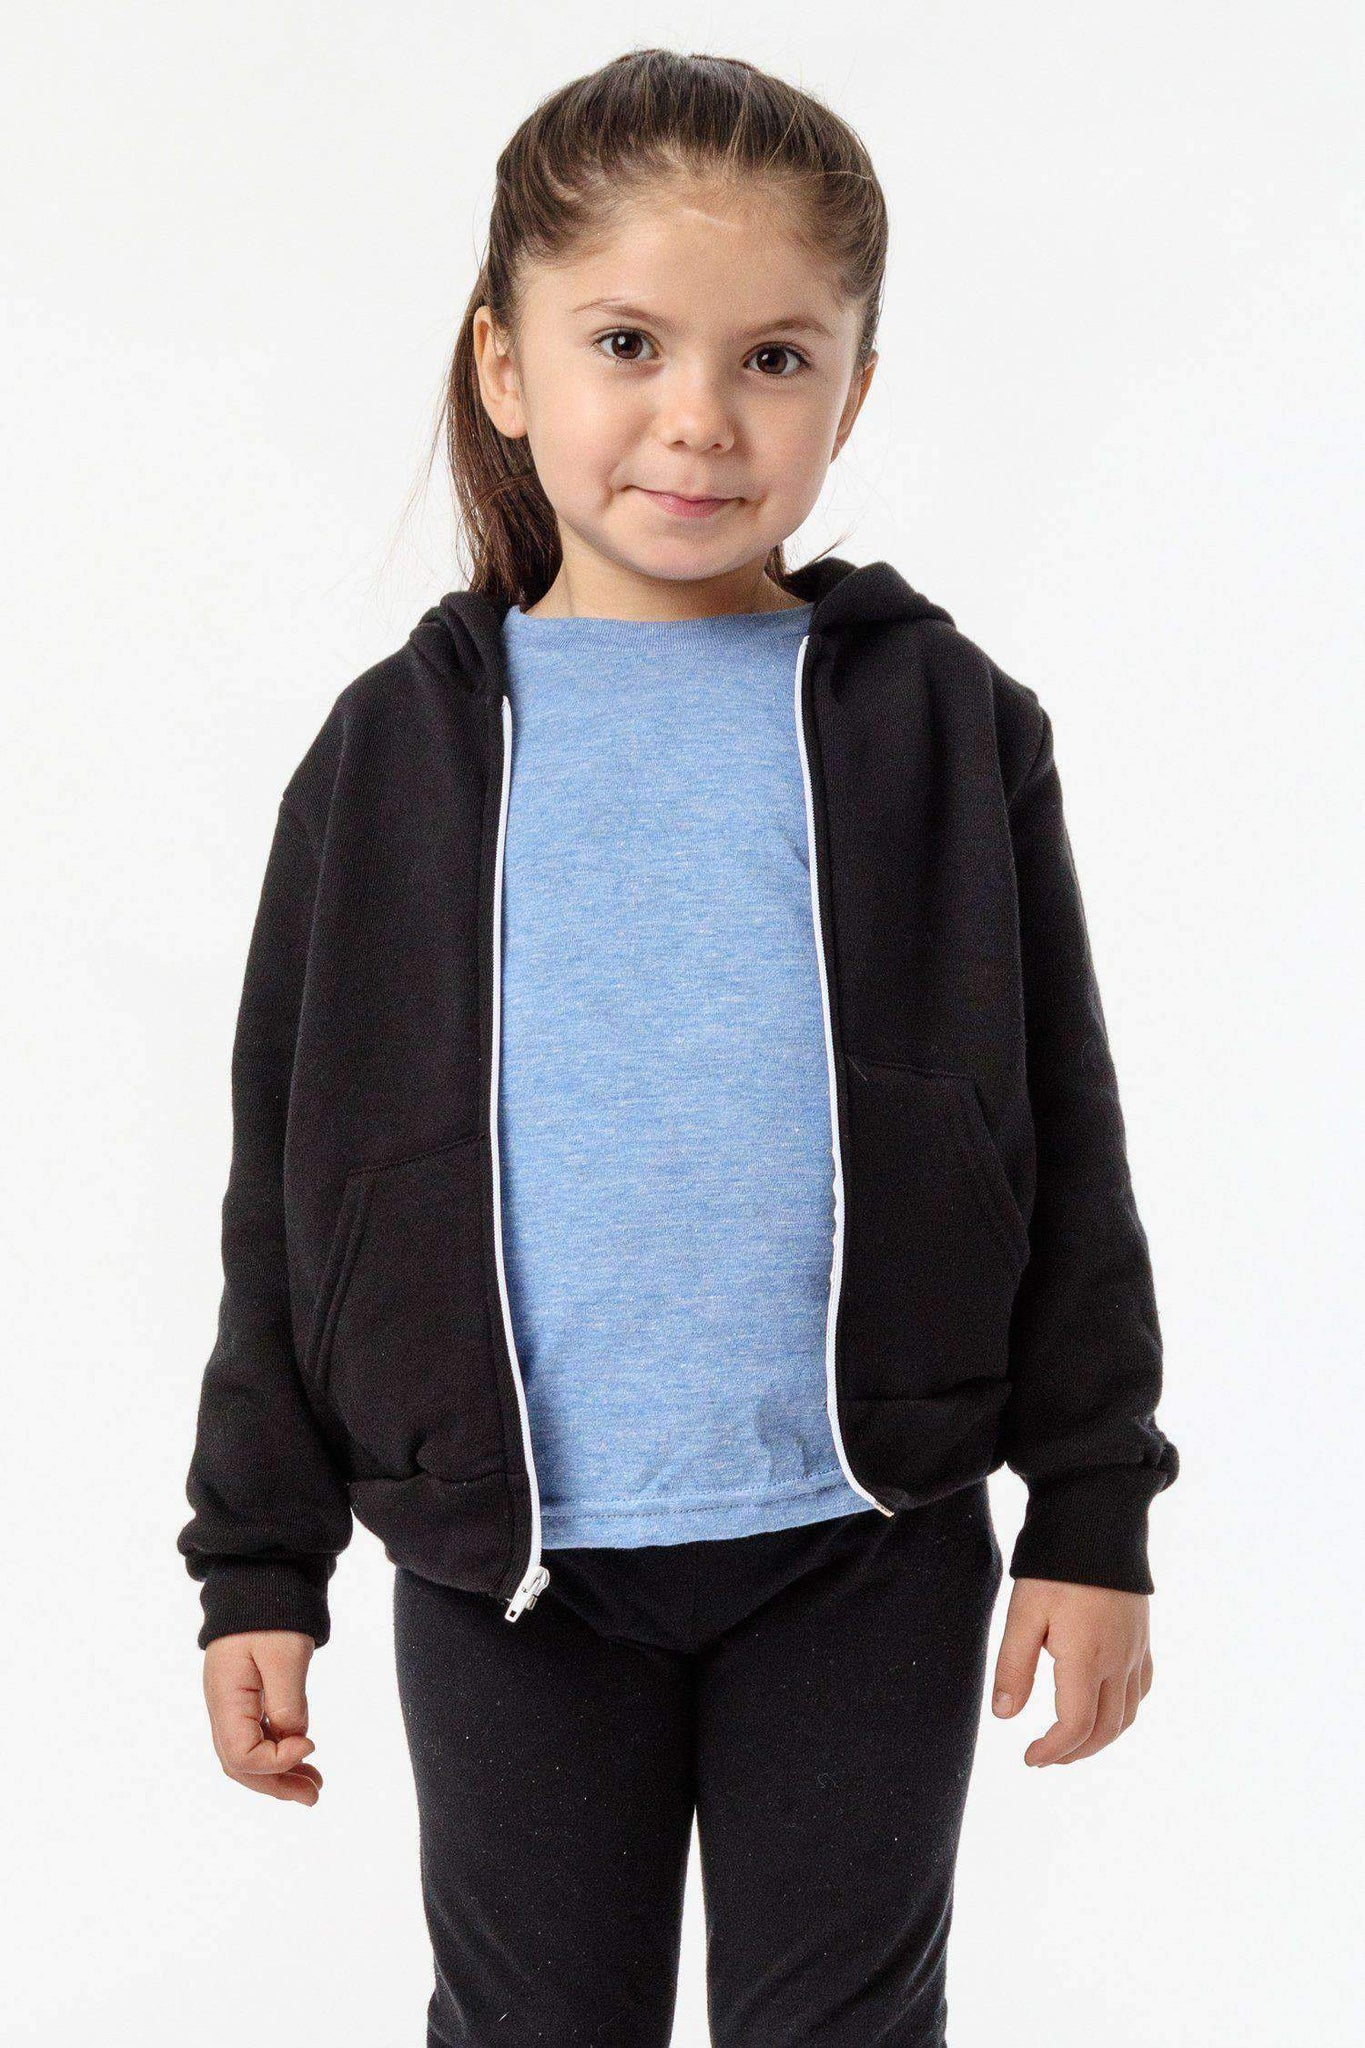 F1097 - Toddler Poly Cotton Zip Hoodie Kids Los Angeles Apparel Black 2